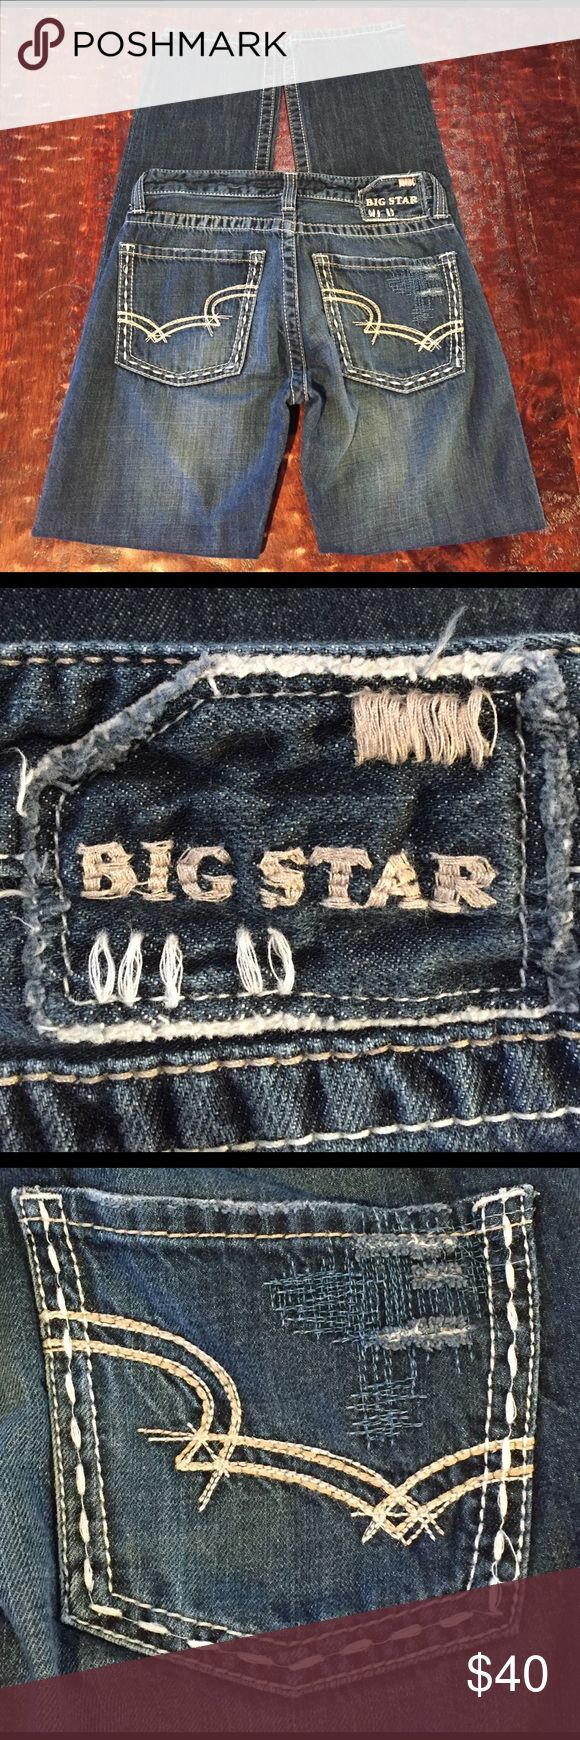 """Big Star Dylan Boyfriend Fit Jean Size 25L Big Star Dylan Boyfriend Fit Jean Size 25L. Jean has a 30"""" inseam. Jean is in excellent condition with no signs of wear. Comes from a Smoke Free/Pet Friendly home. Offers always welcome. Big Star Jeans Boyfriend"""